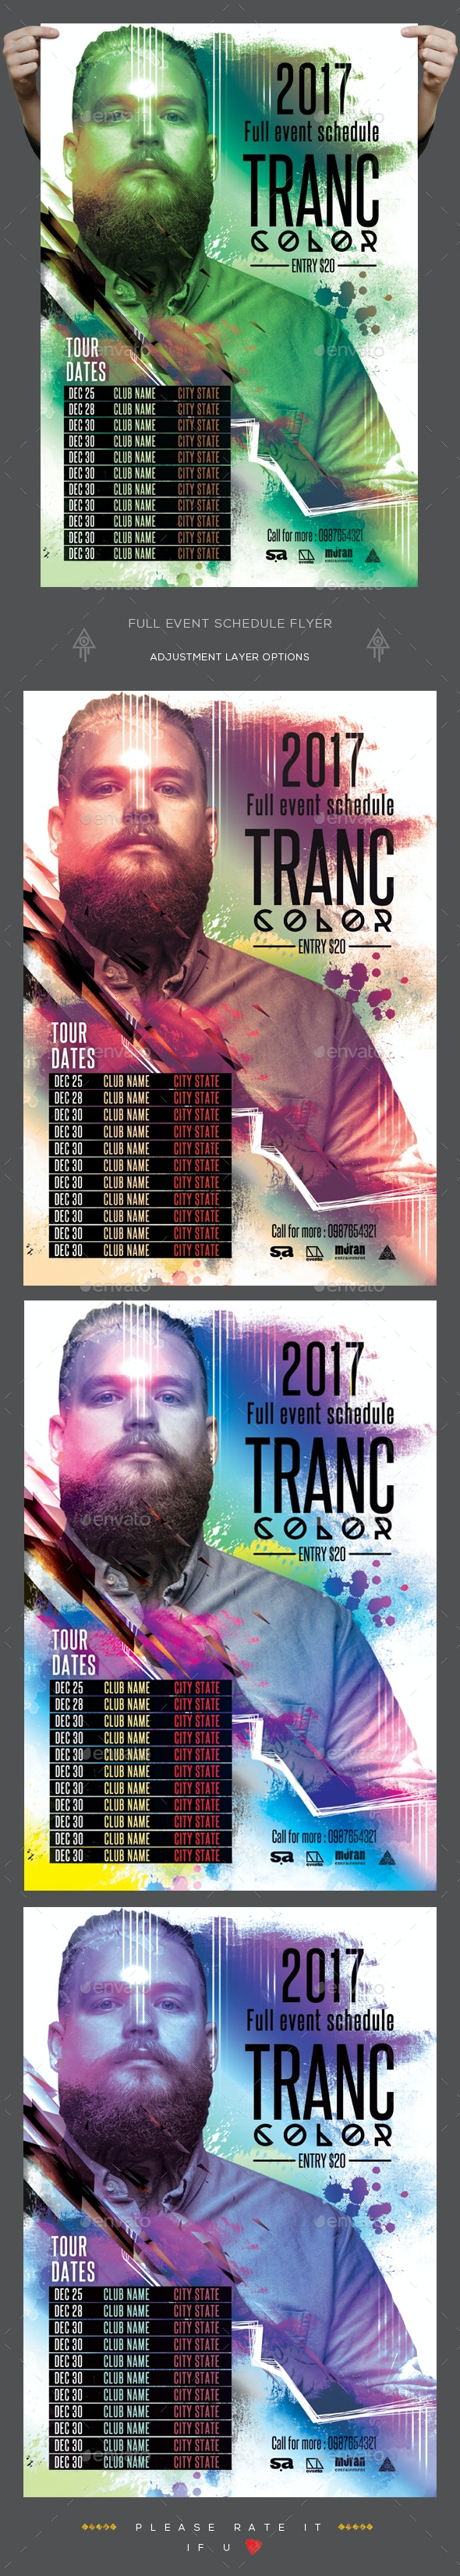 Full Event Schedule Flyer - Clubs & Parties Events